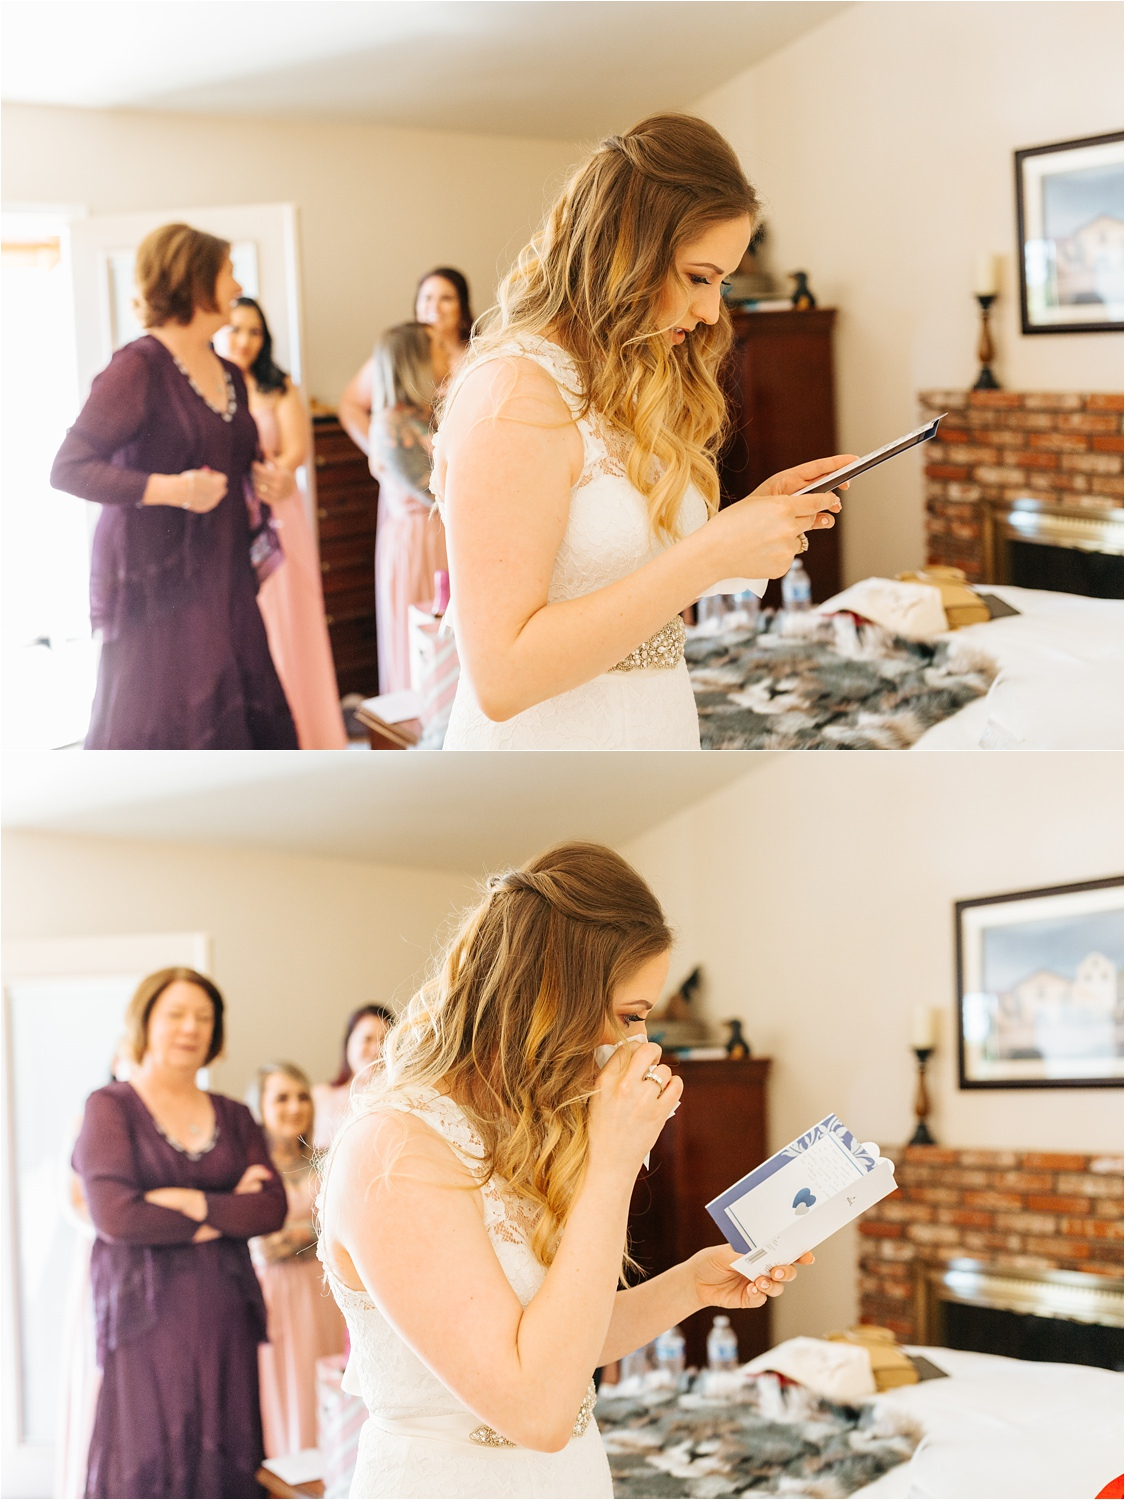 Bride reading a heartfelt card from her groom - https://brittneyhannonphotography.com